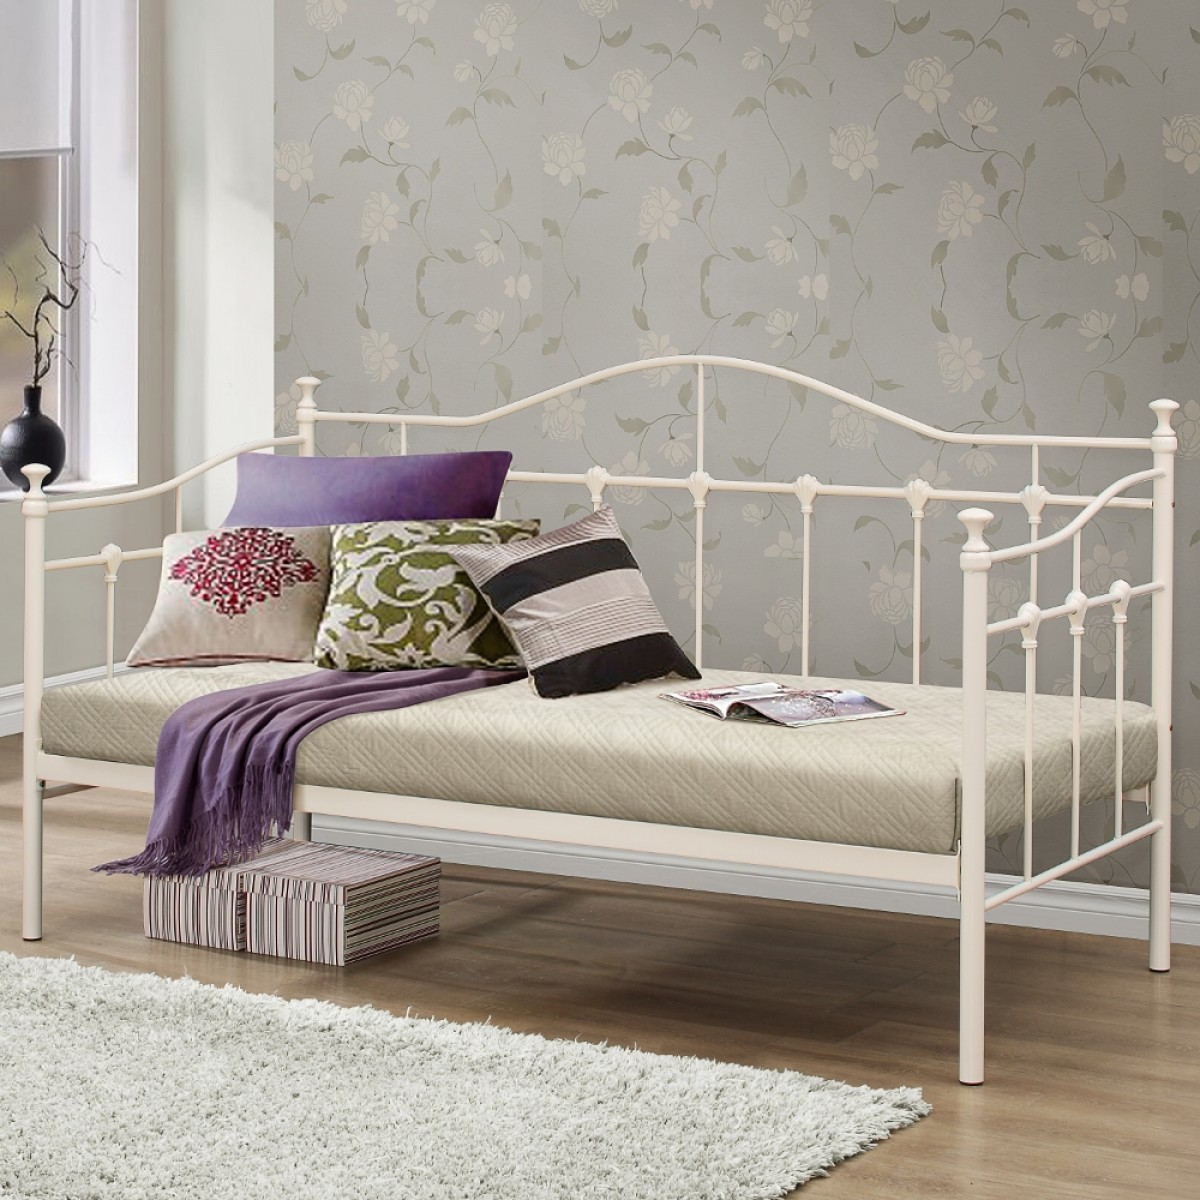 Torino cream metal day bed 3ft single